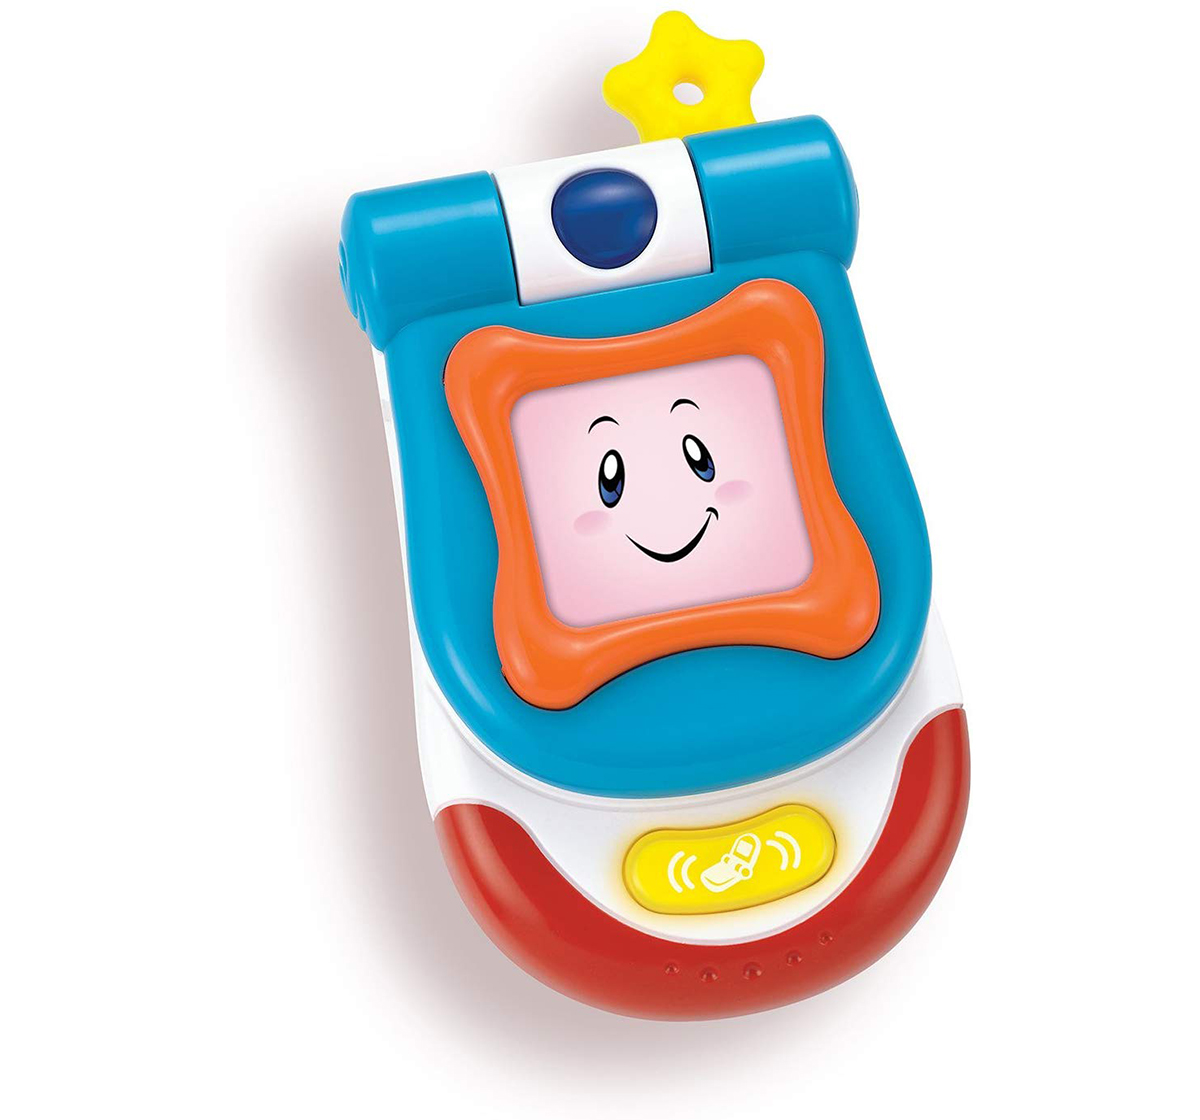 WinFun | Winfun My Flip up Sounds Phone - Blue Learning Toys for Kids age 3M+ (Blue)